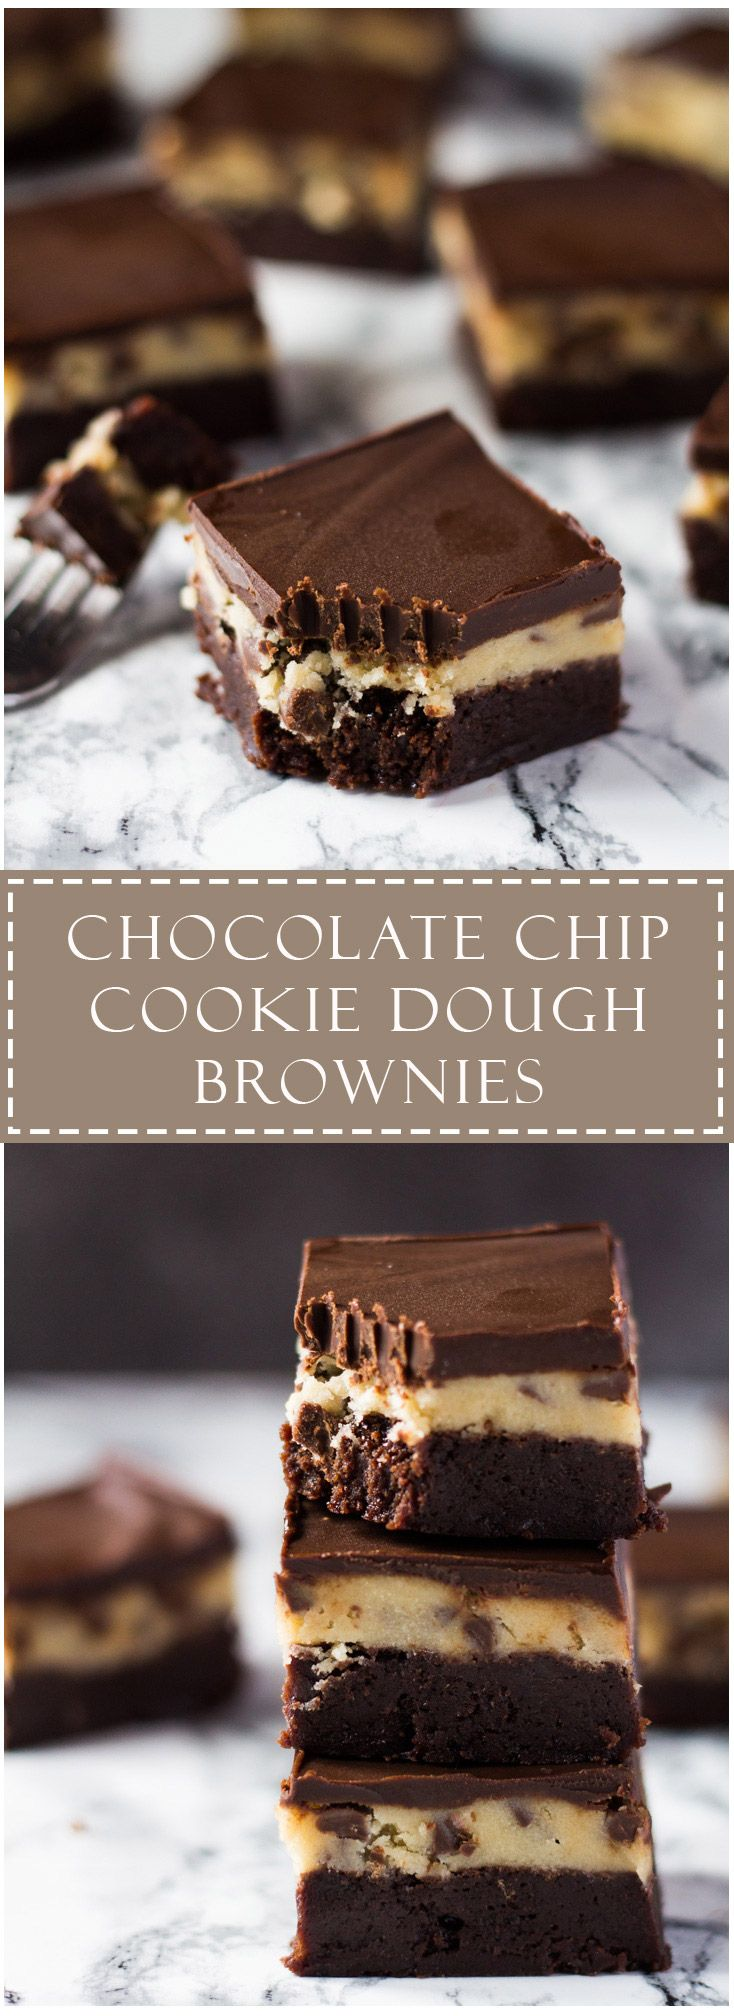 Chocolate Chip Cookie Dough Brownies | Marsha's Baking Addiction